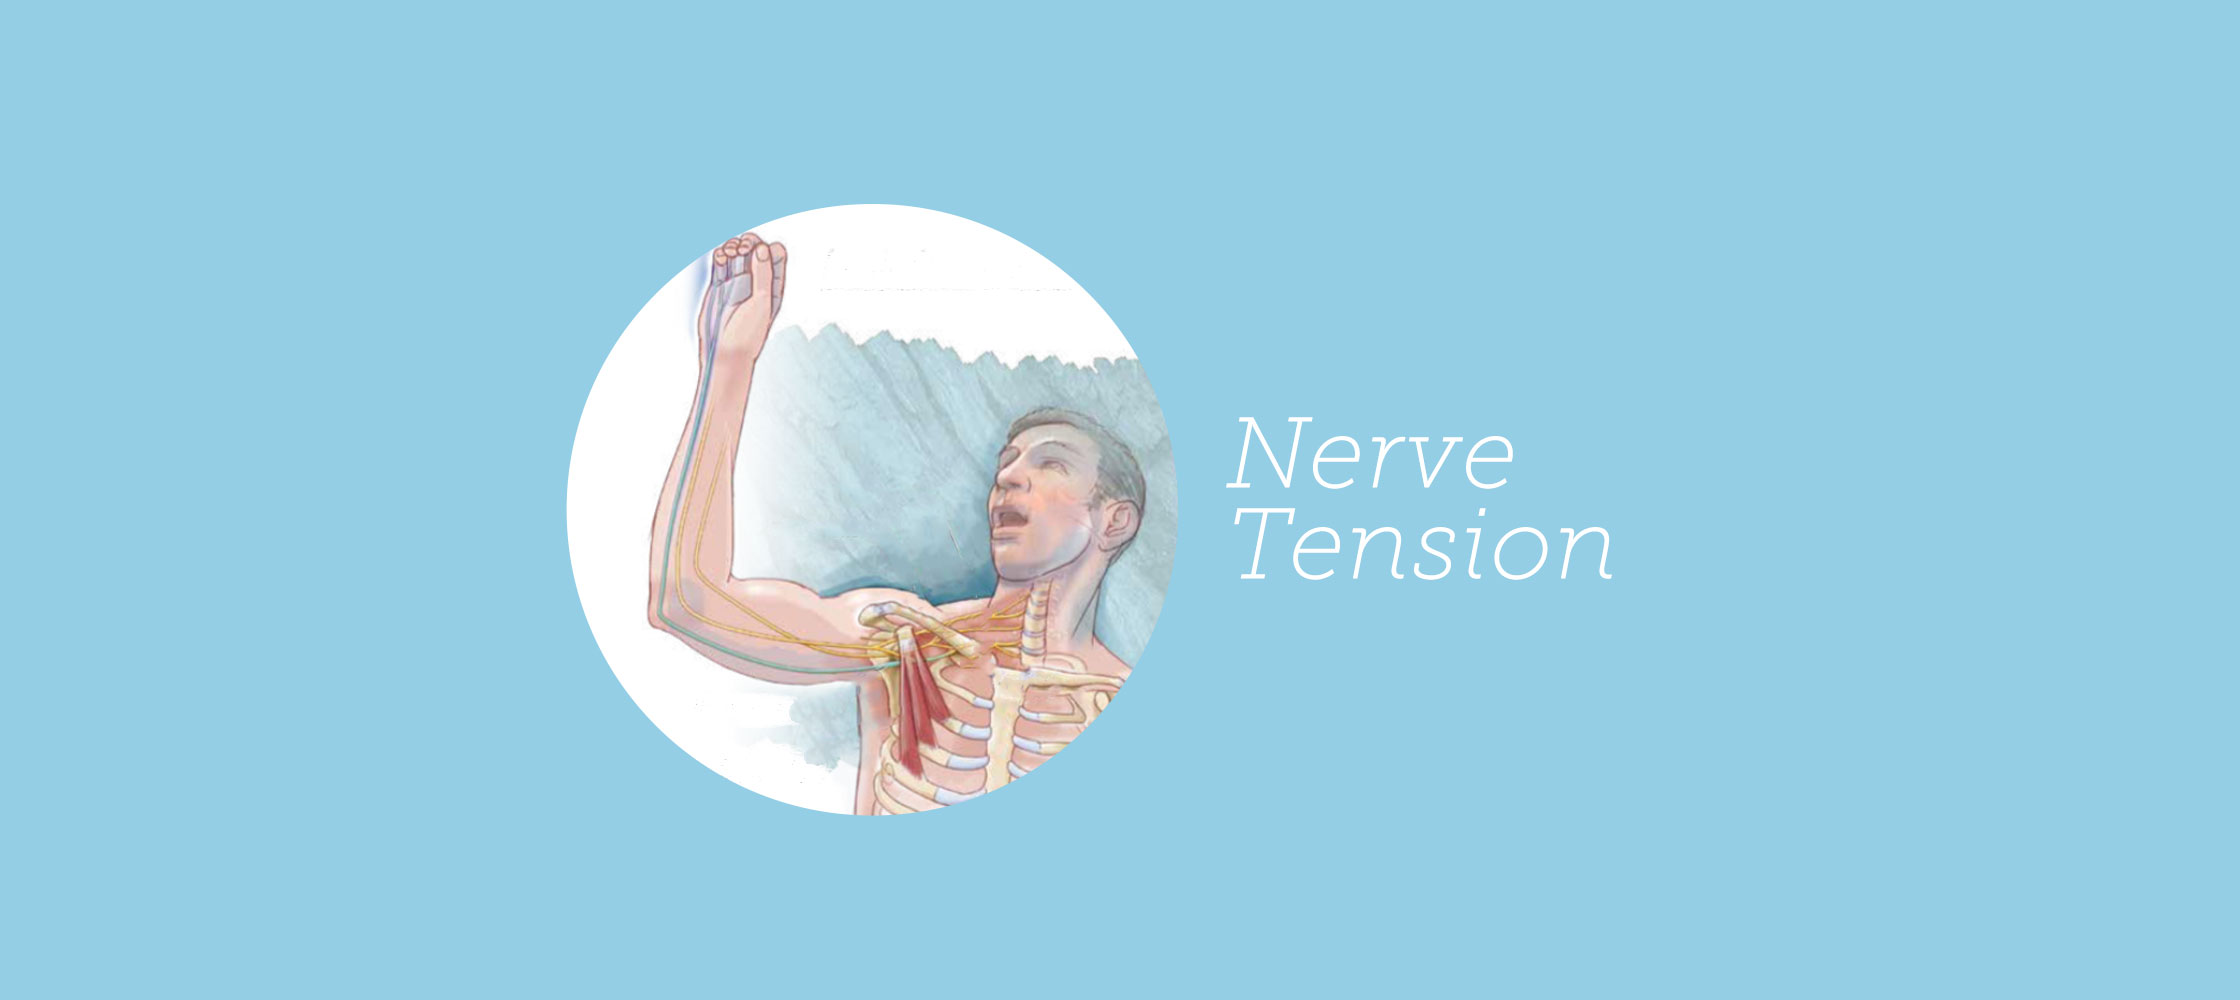 205-nerve-tension